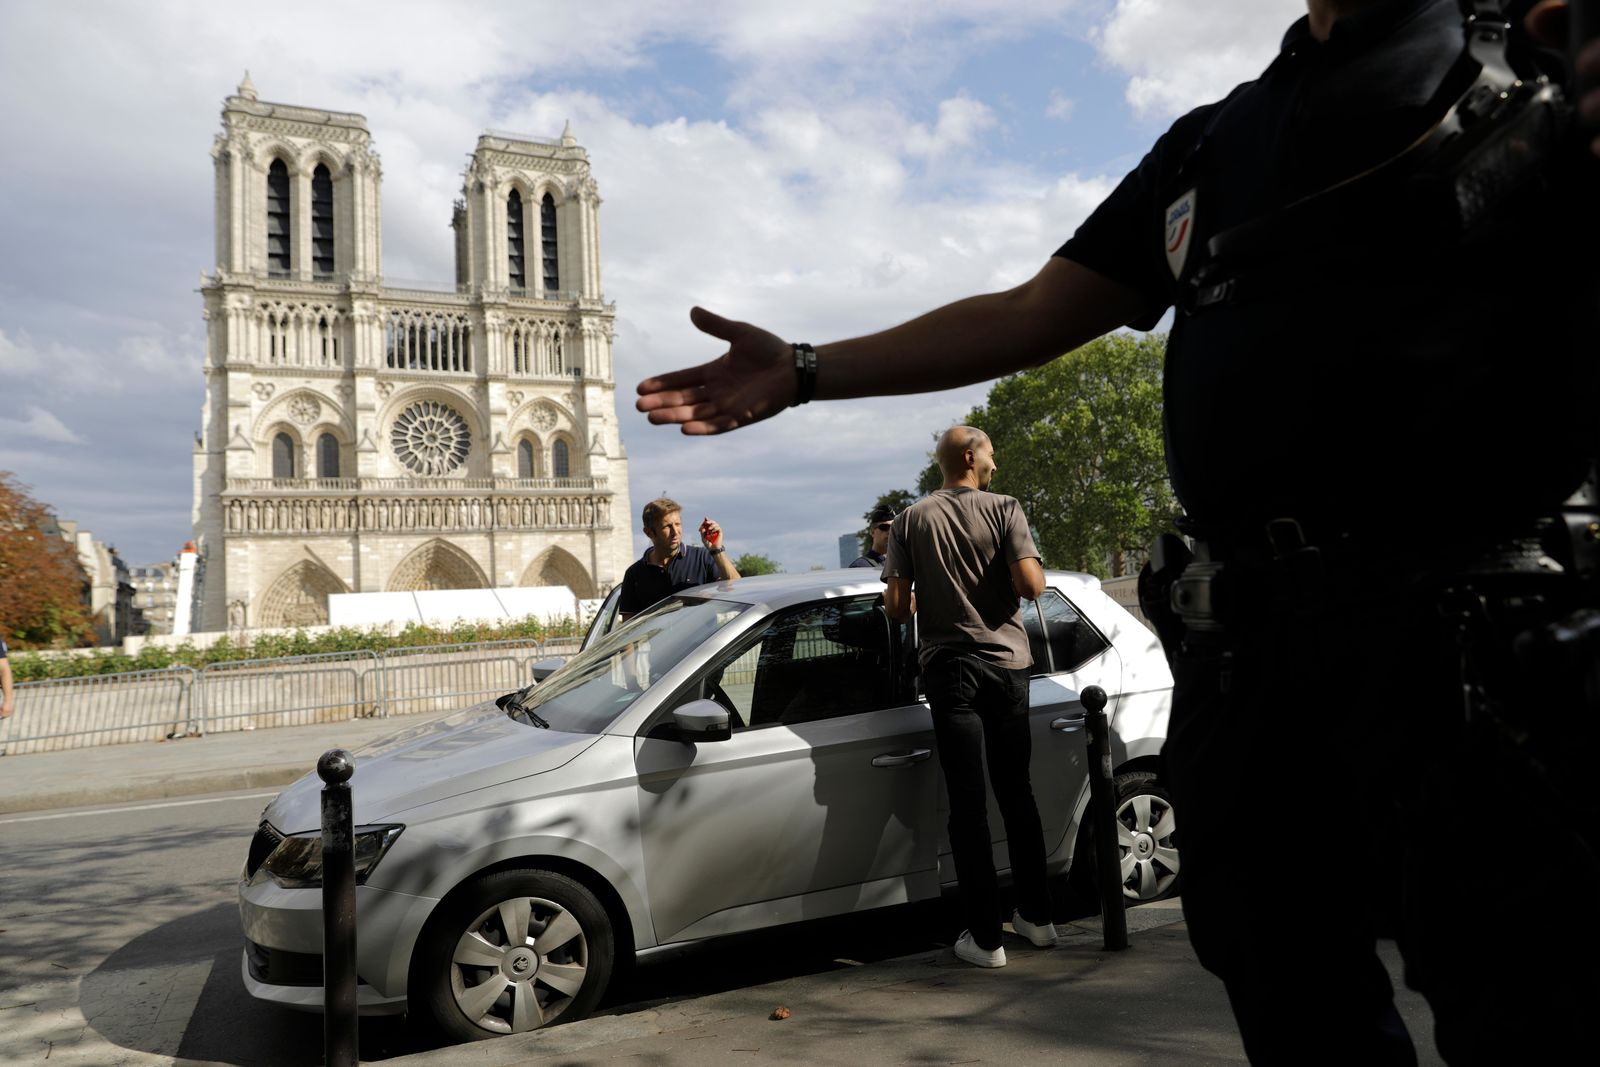 Police officers clear the area around Notre Dame cathedral in Paris, Monday, Aug. 12, 2019.r. (AP Photo/Lewis Joly)